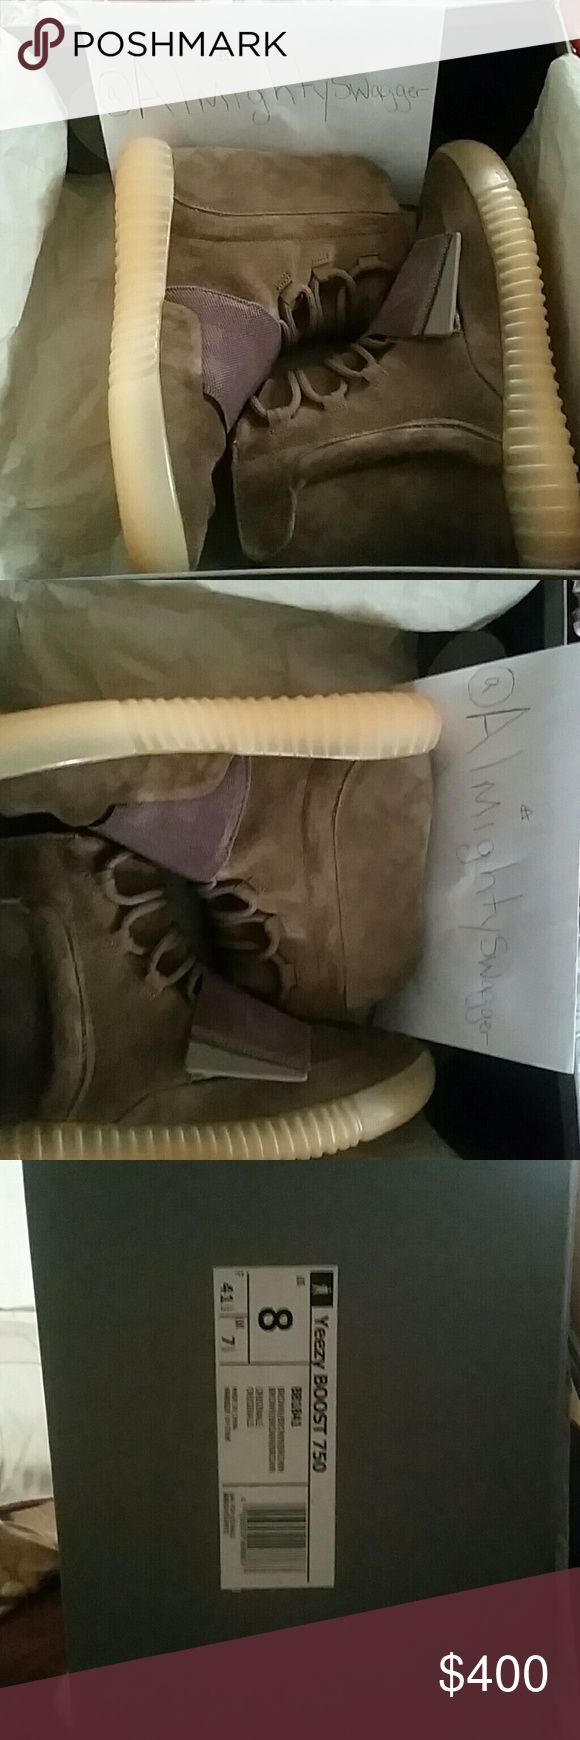 Authentic Yeezy Boost 750 Brown yeezy Boost 750 adidas Shoes Sneakers